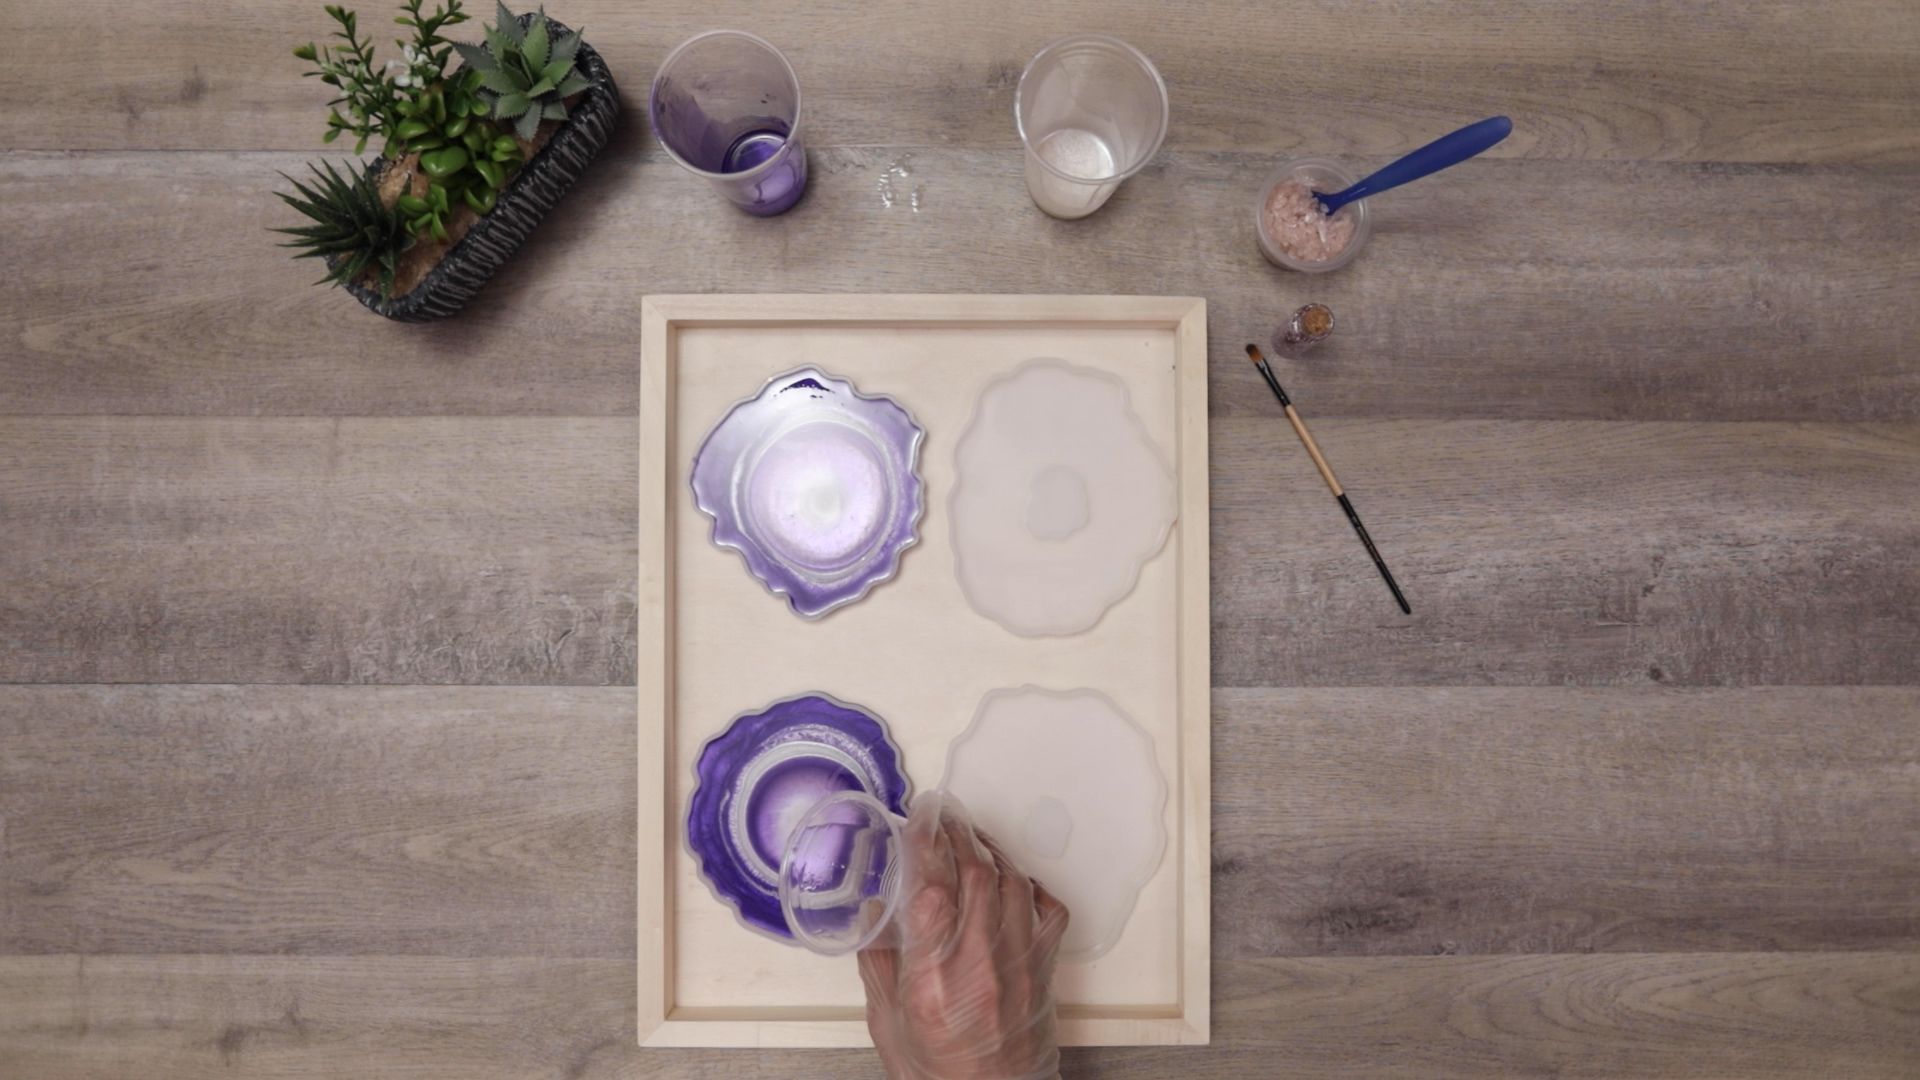 pouring clear resin into center of coasters to push color out